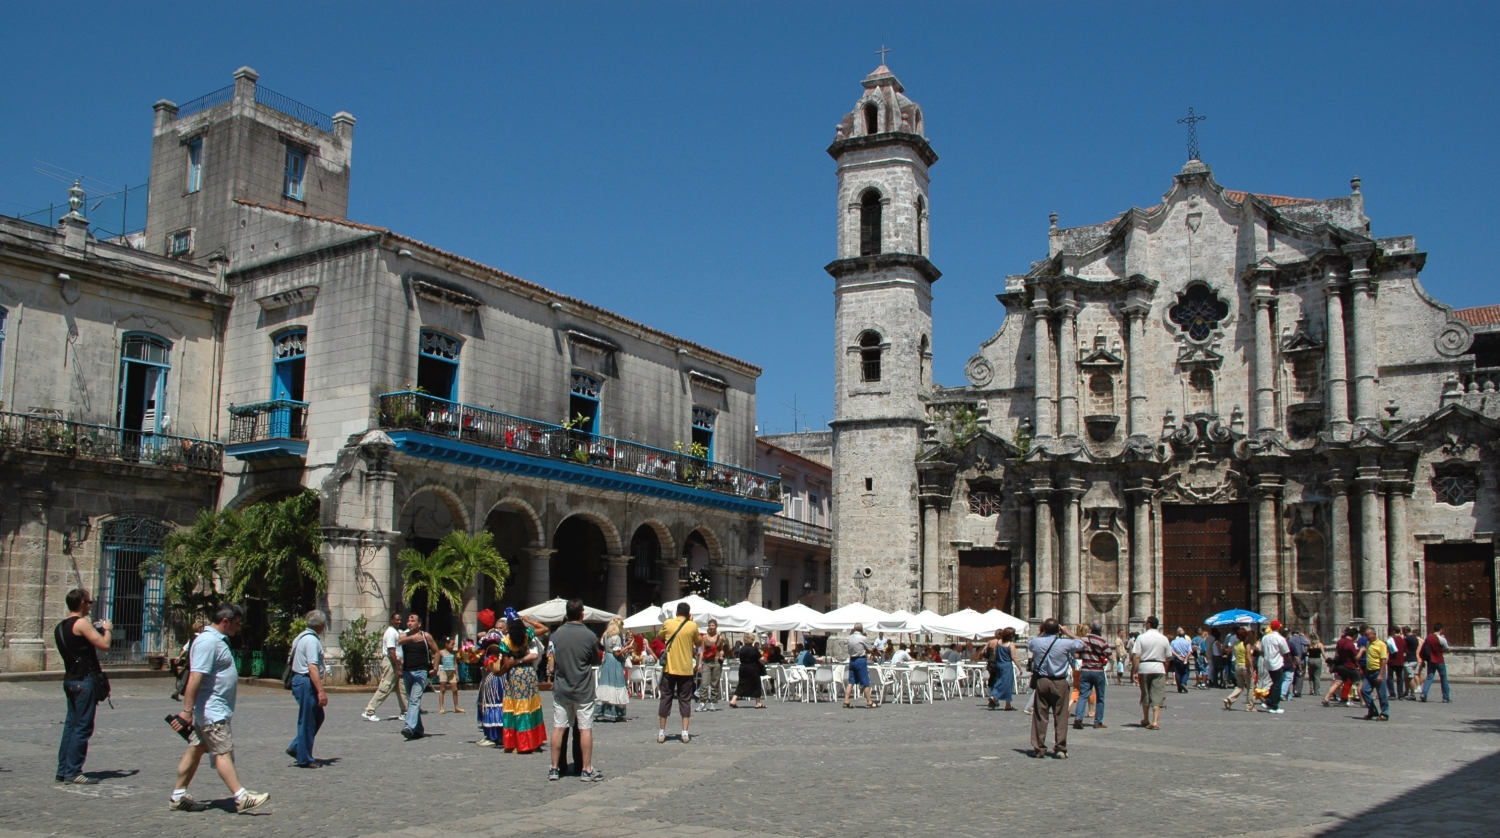 Cathedral Square in Old Havana